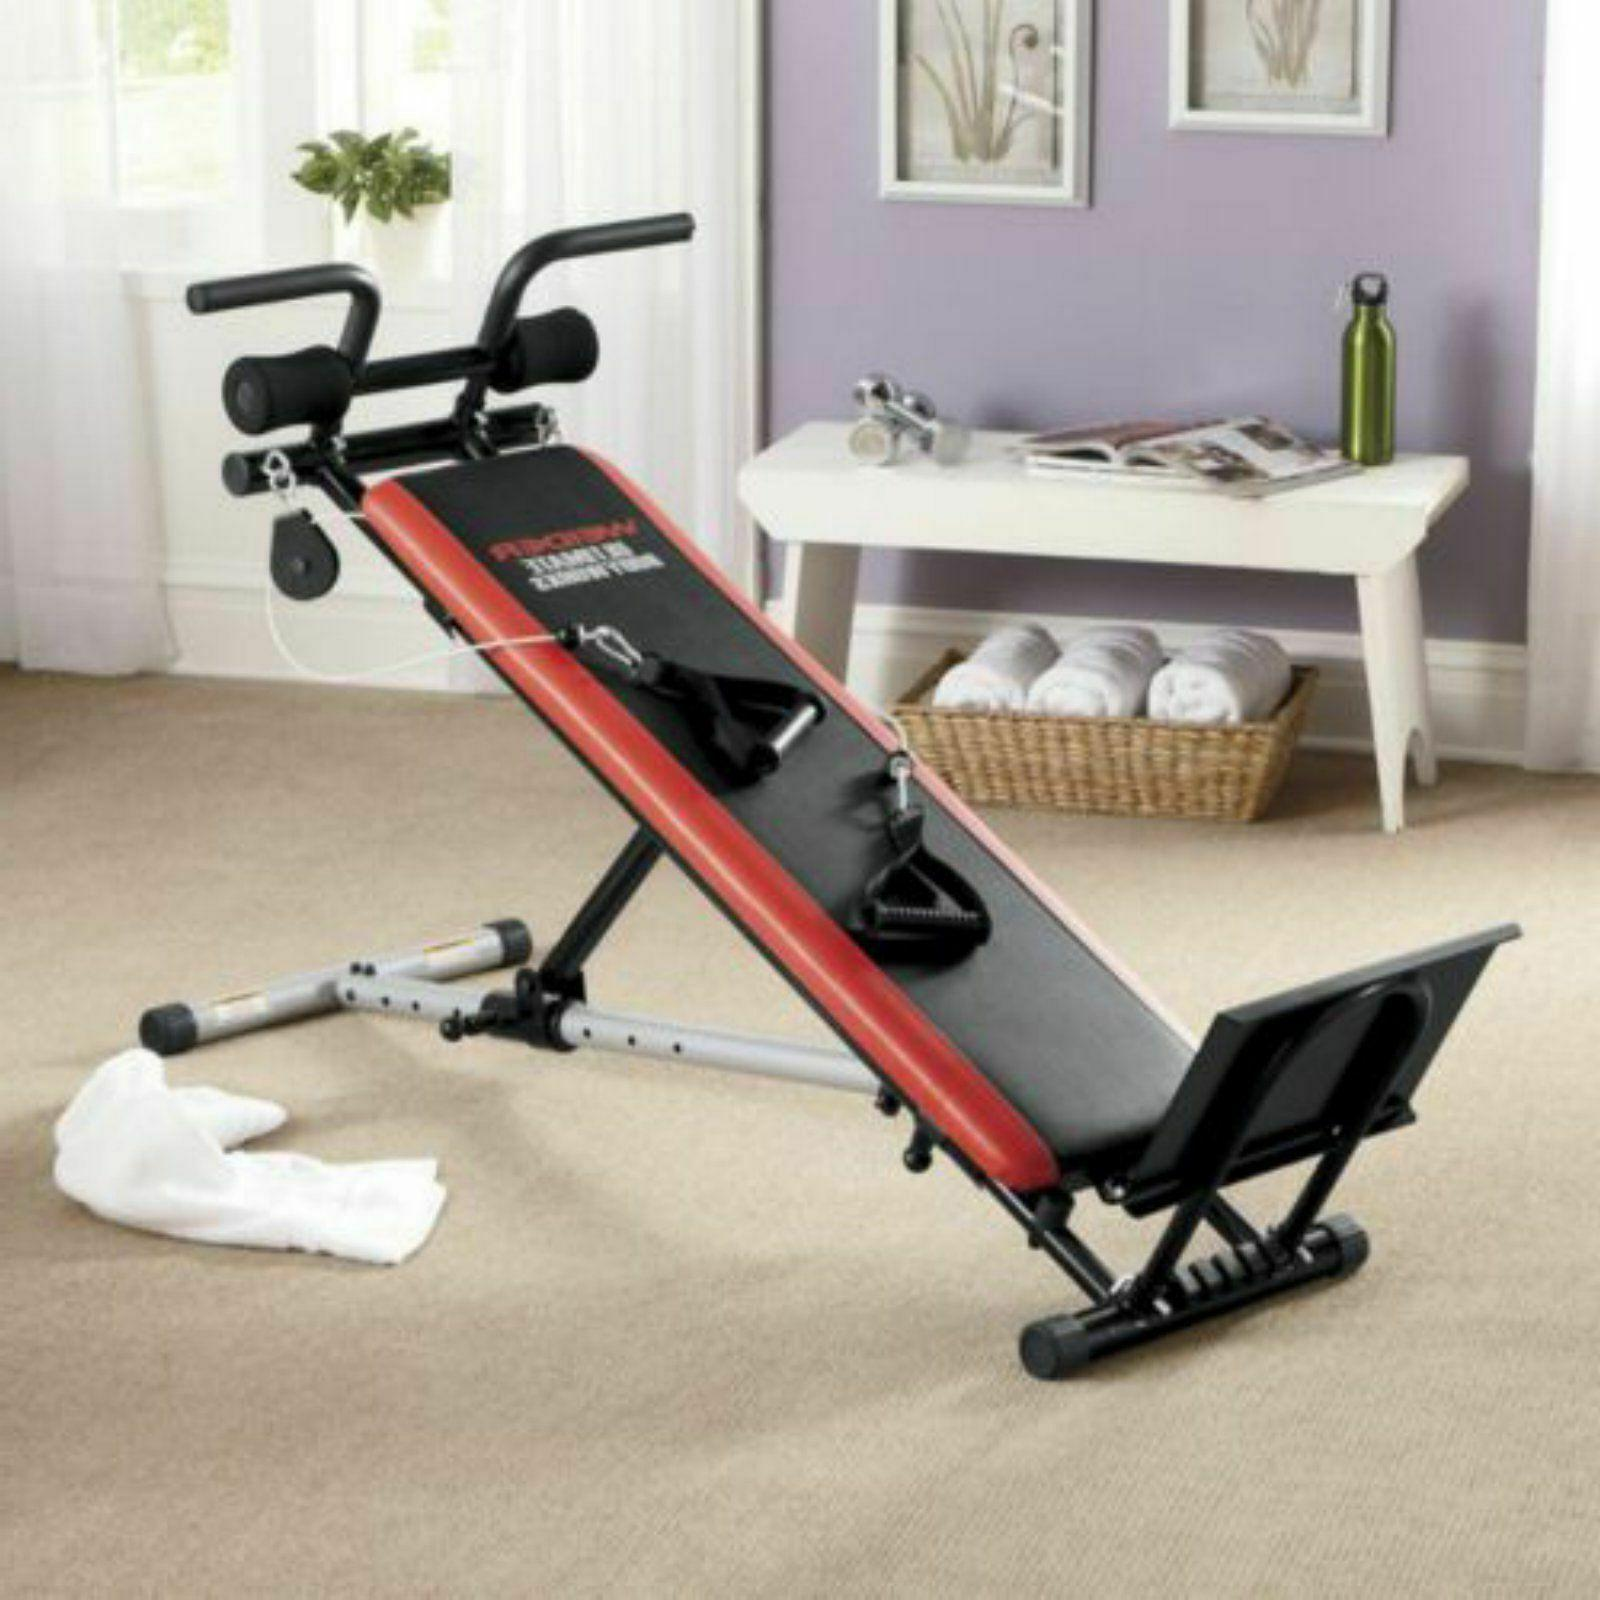 total gym adjustable folding exercise fitness workout